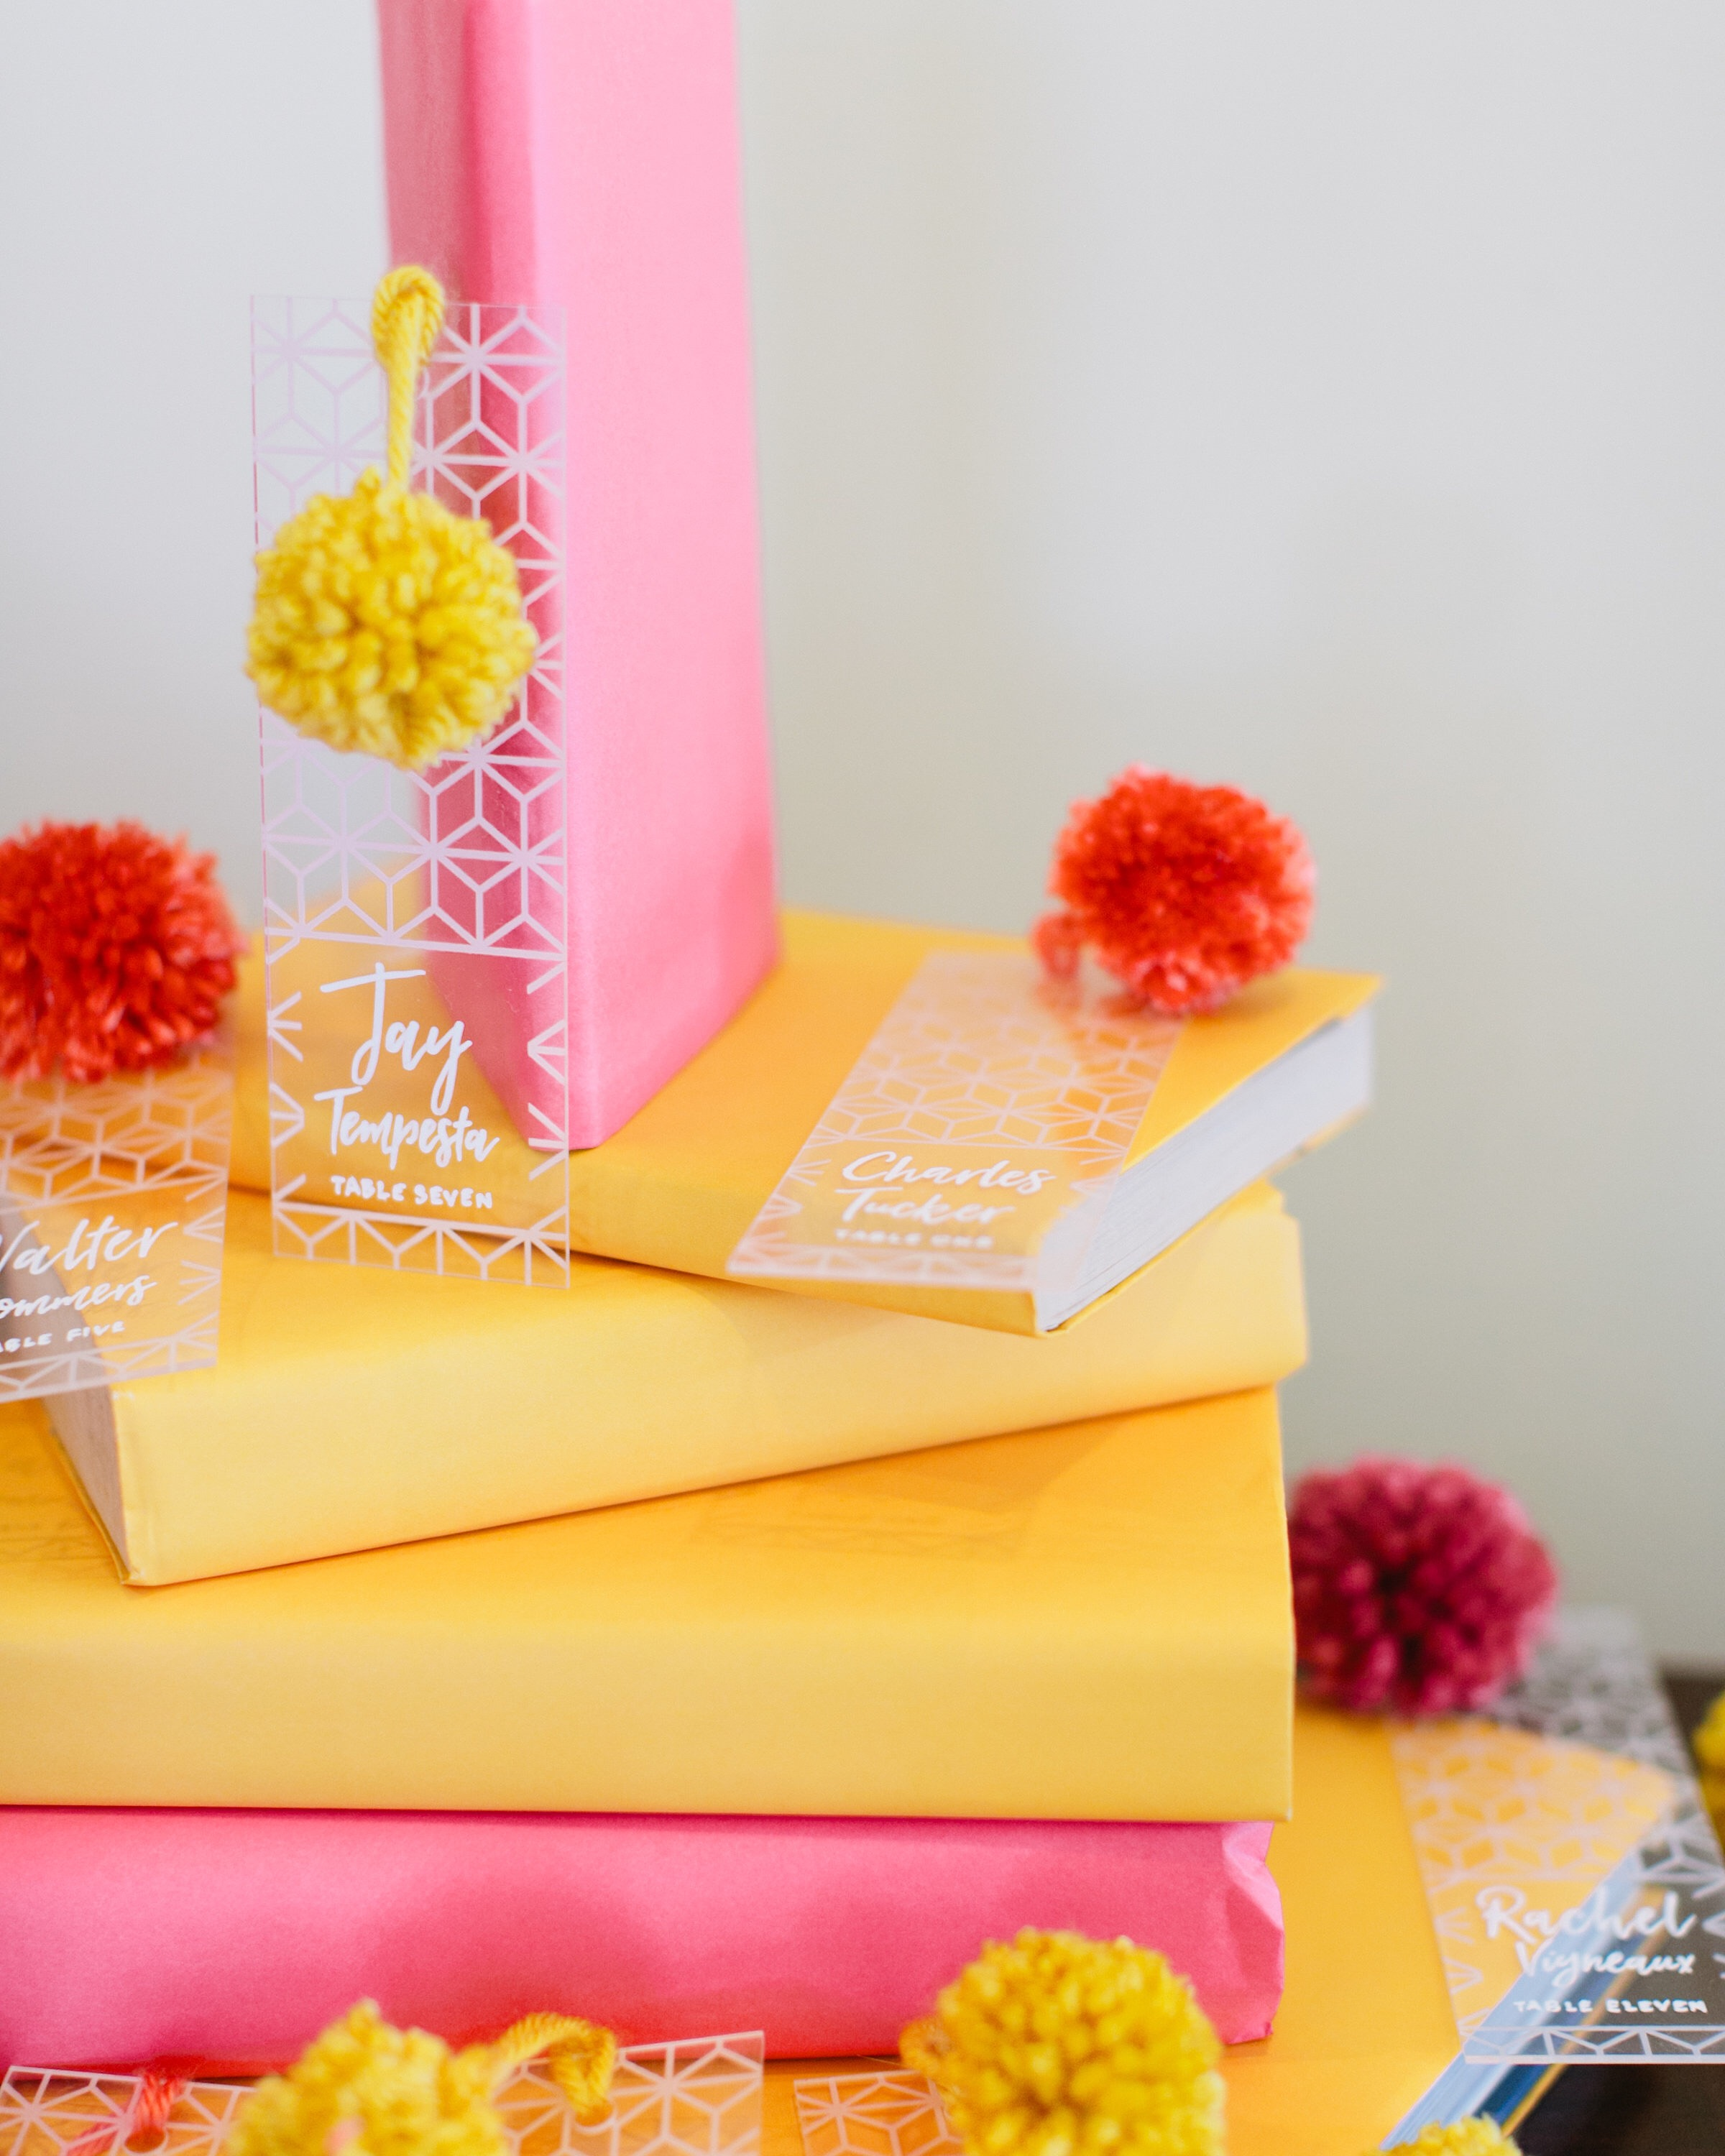 Acrylic Escort Cards by Bowerbird Atelier | Photo by Sorella Muse | Styling by Linen & Lilac